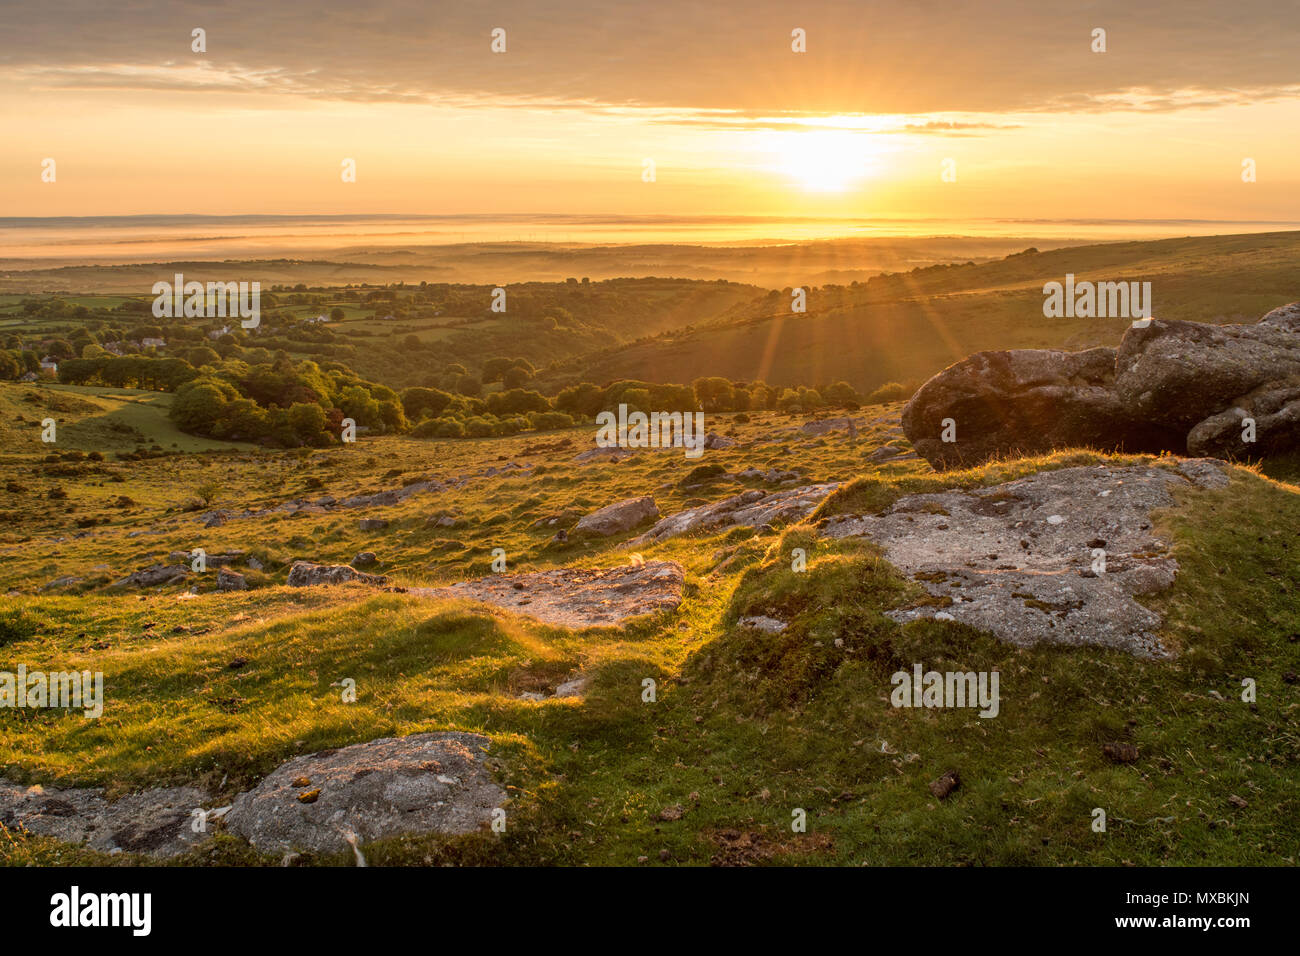 A beautiful Sunday morning June sunrise over the village of Belstone on Dartmoor - Stock Image